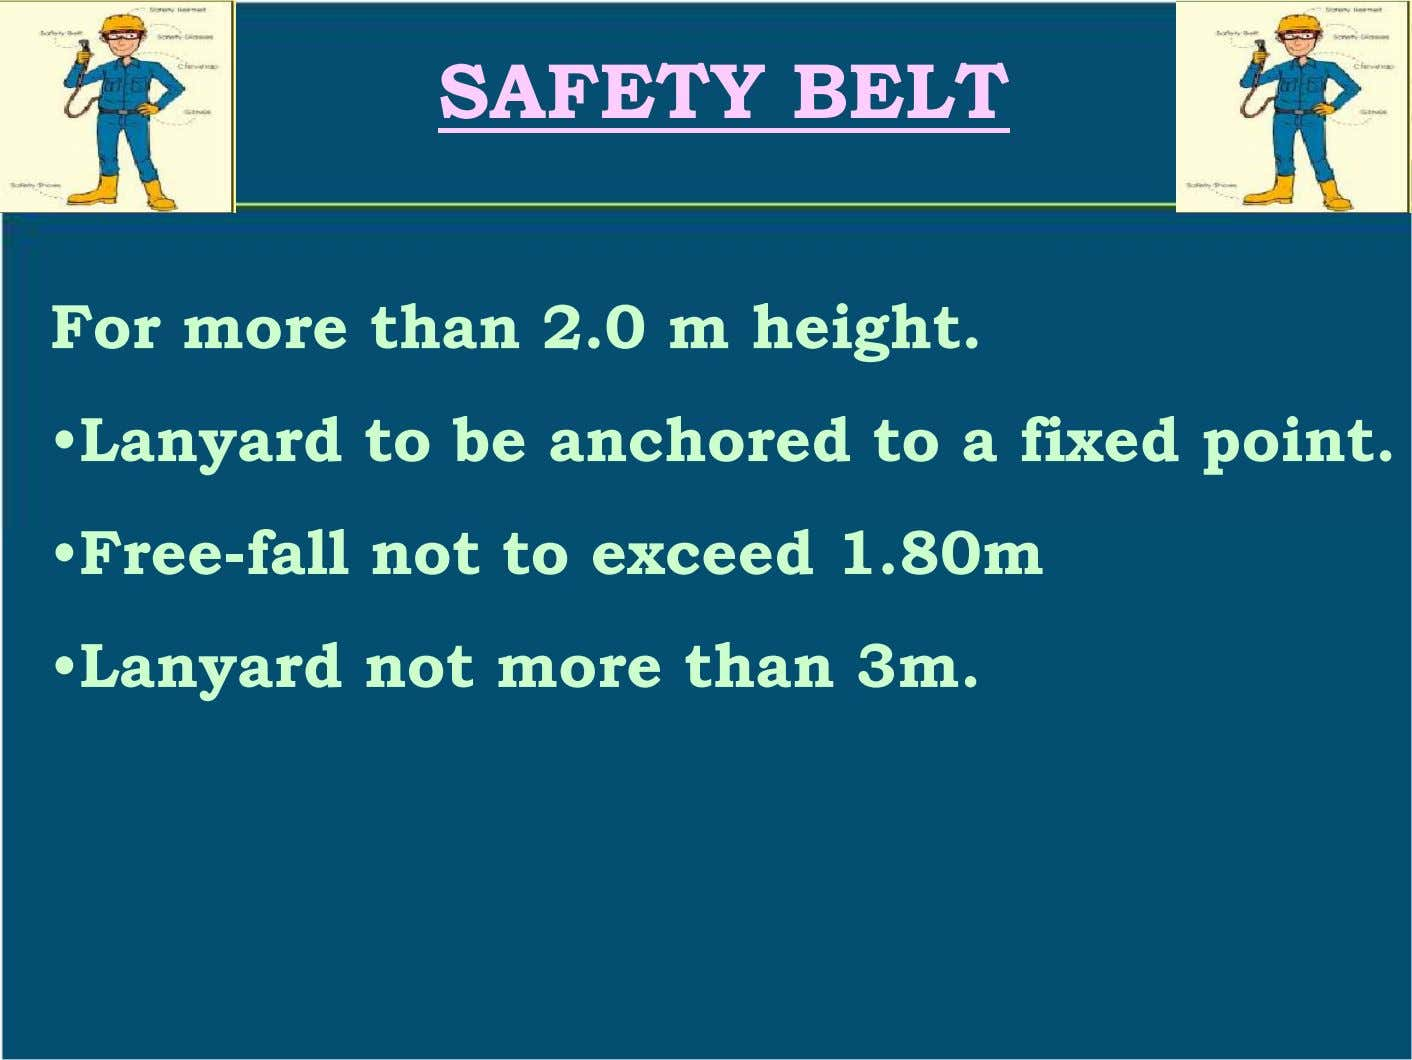 SAFETY BELT For more than 2.0 m height. •Lanyard to be anchored to a fixed